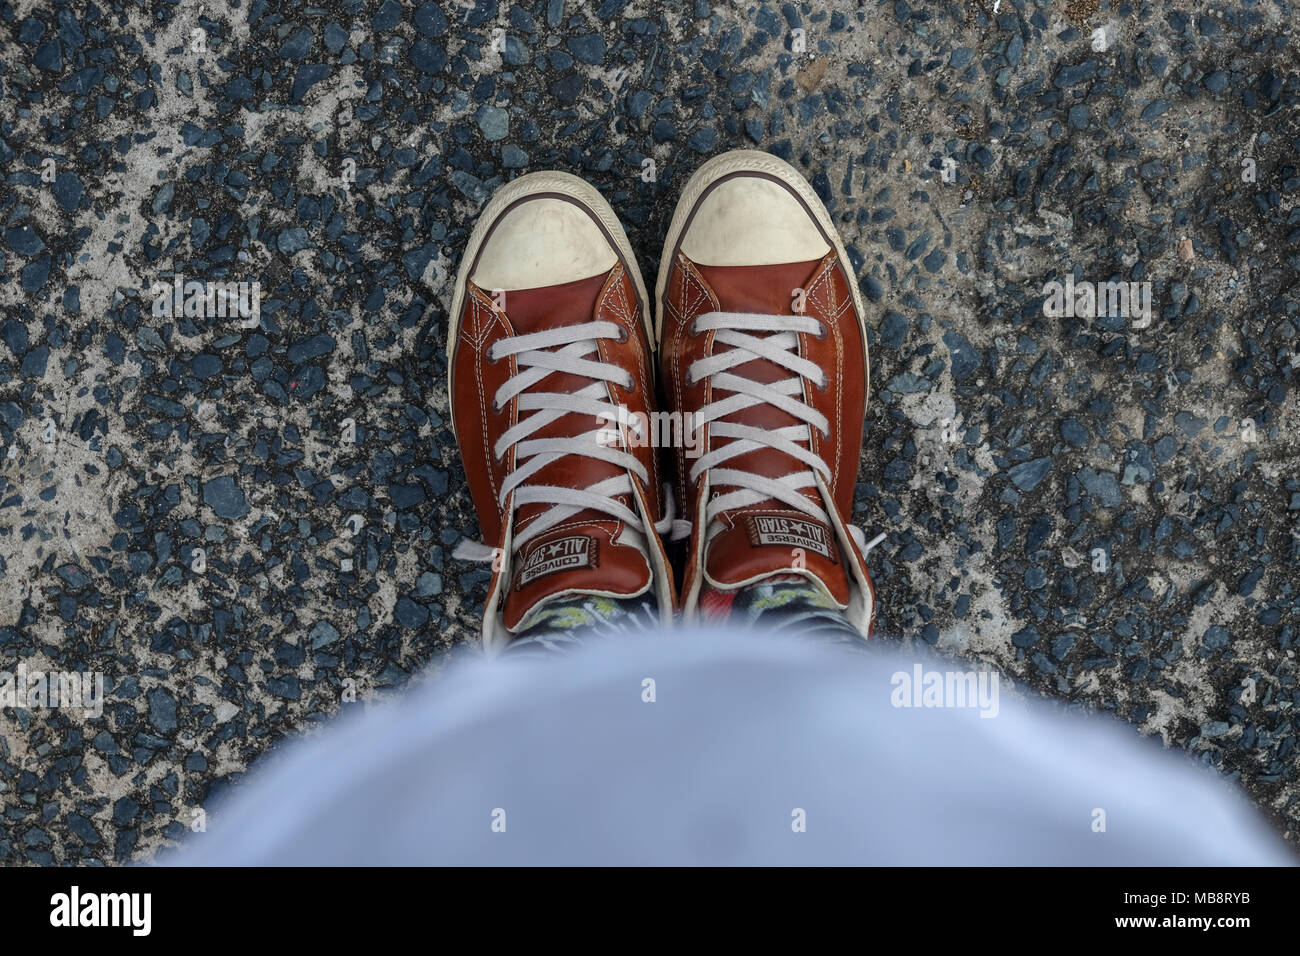 leather converse - Stock Image